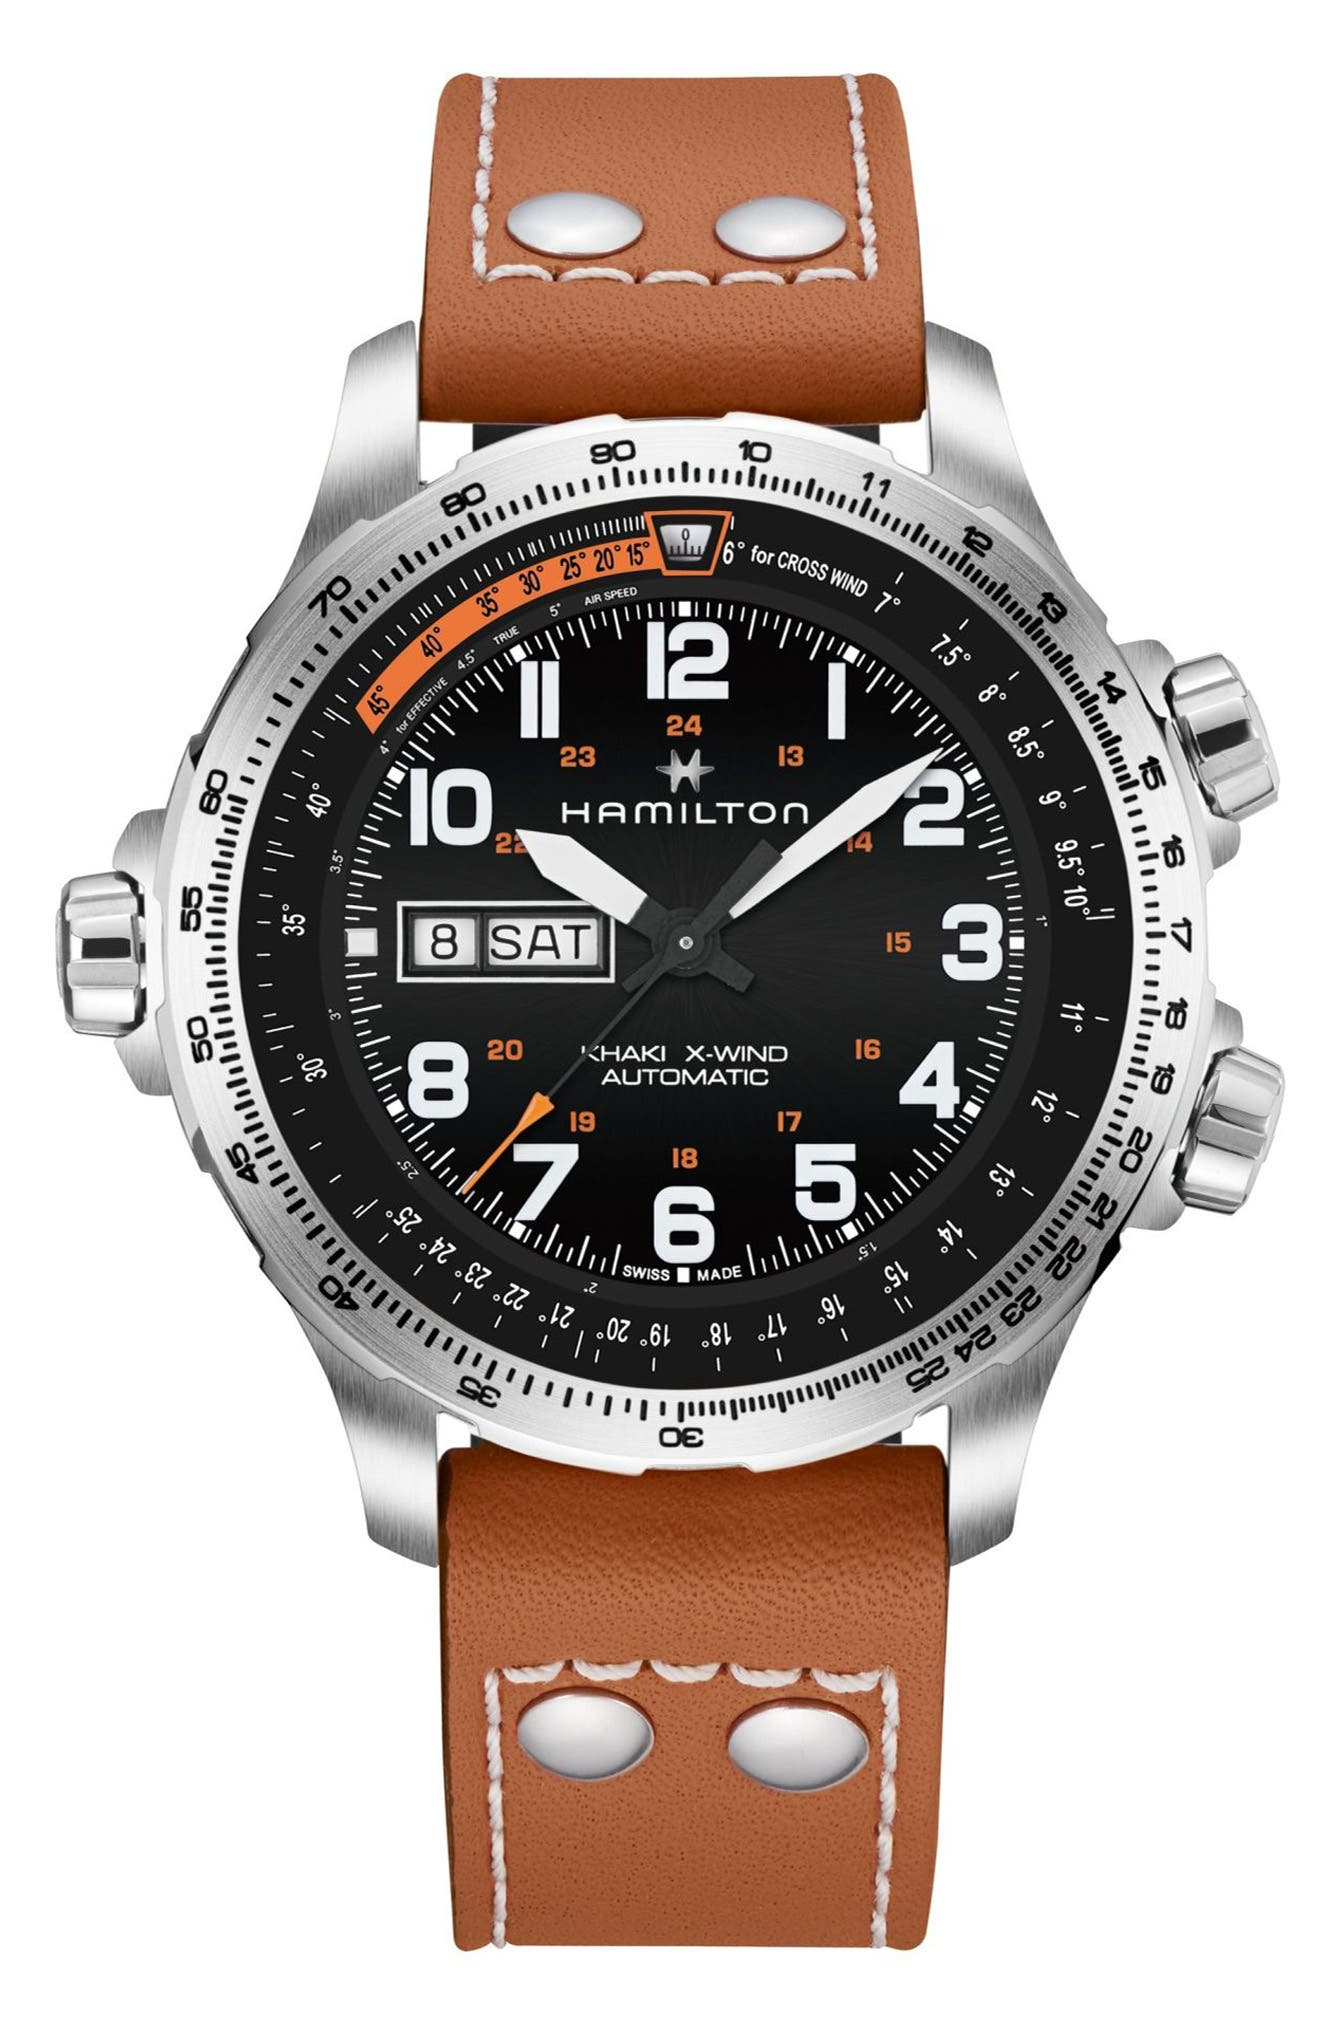 Hamilton Khaki X-Wind Automatic Chronograph Leather Strap Watch, 45mm